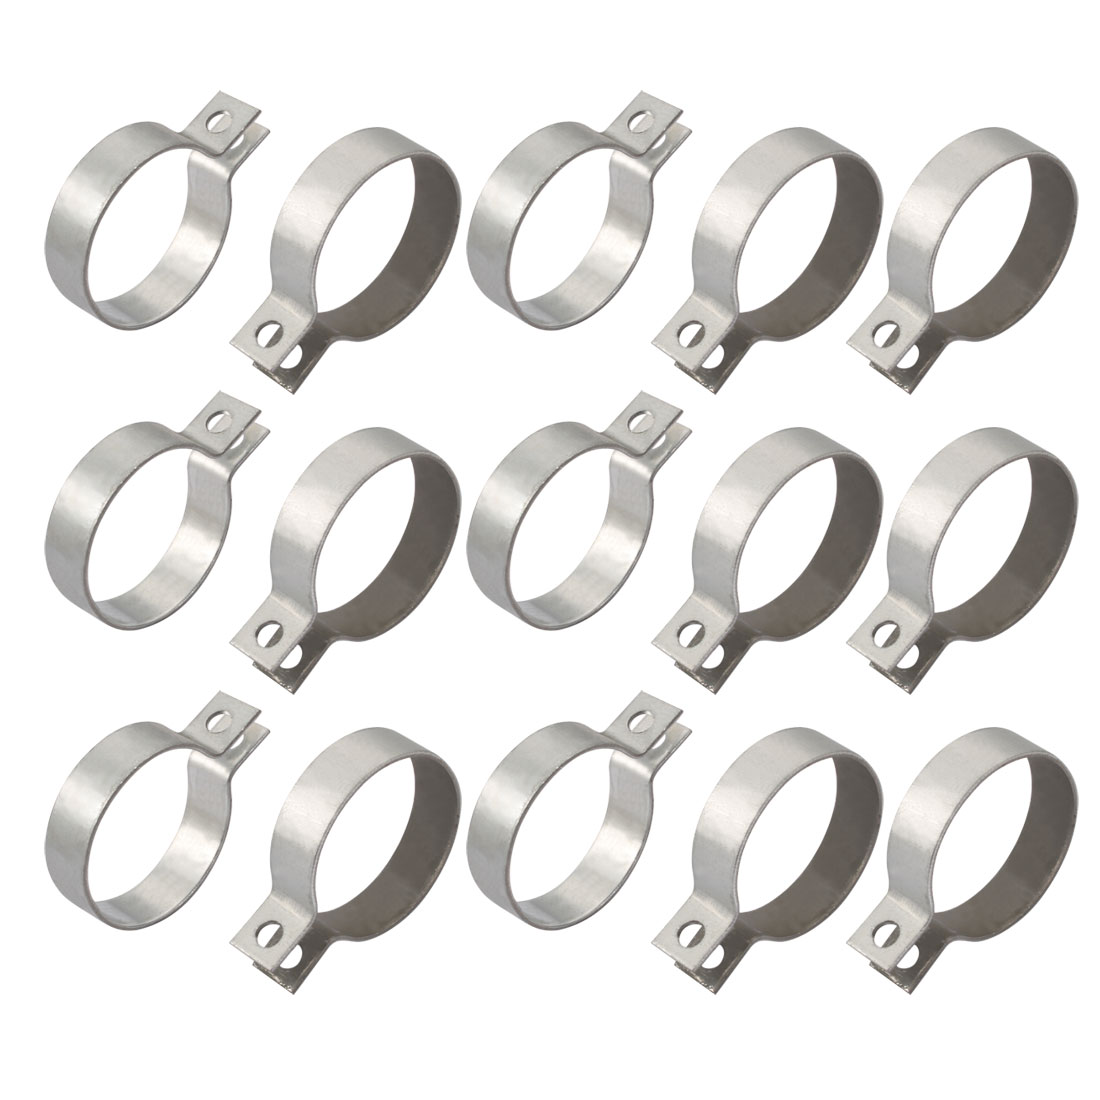 15pcs 50mm Fitting Dia Iron Zinc Plated Pipe Clamp w Screws Nuts